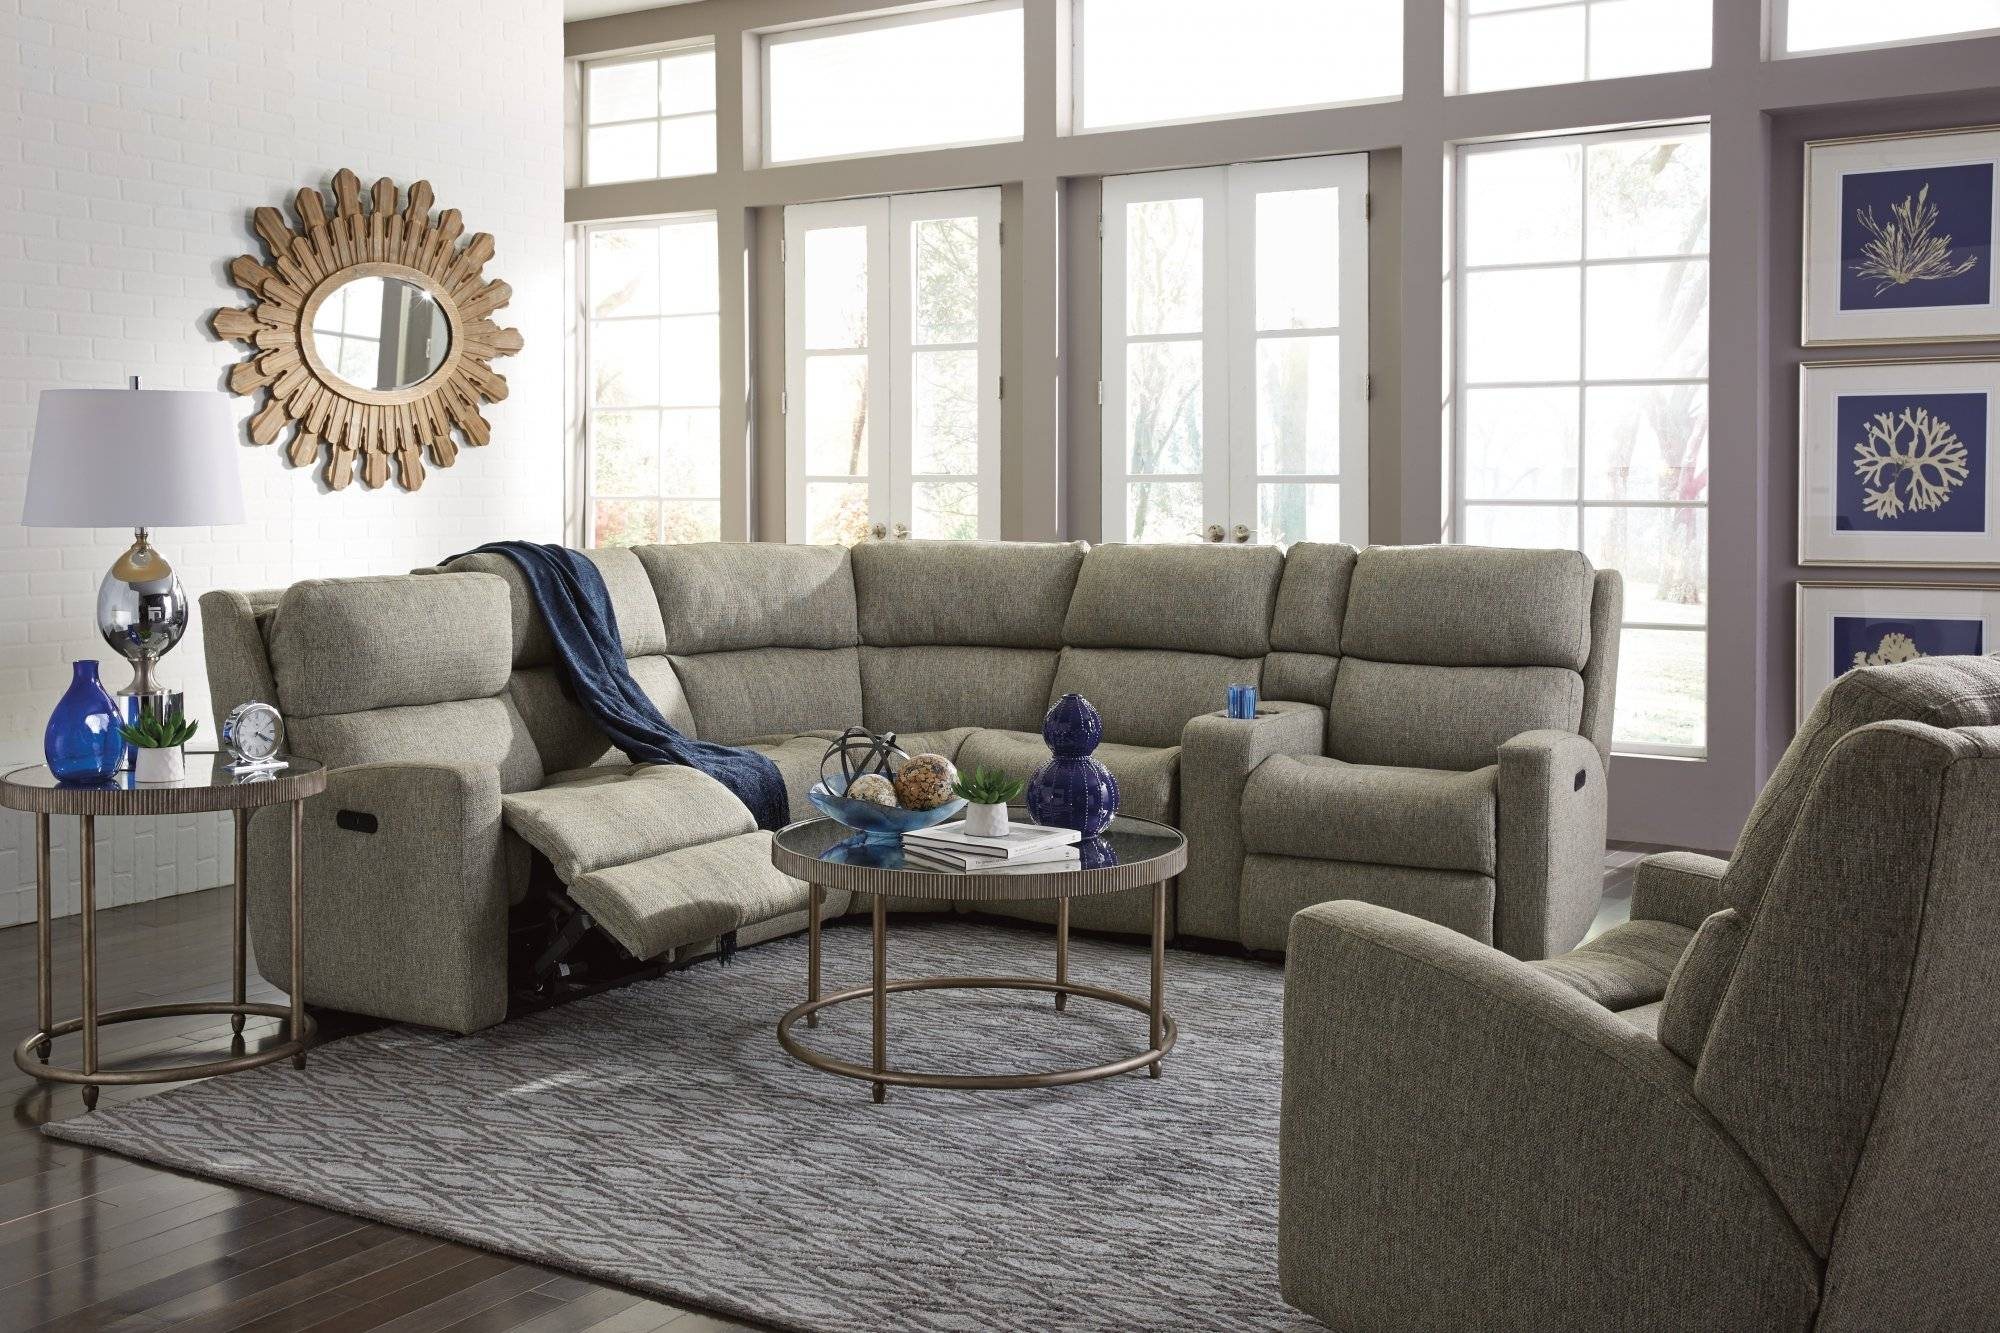 Furniture: Jedd Fabric Reclining Sectional Sofa | Sectional throughout Jedd Fabric Reclining Sectional Sofa (Image 13 of 30)